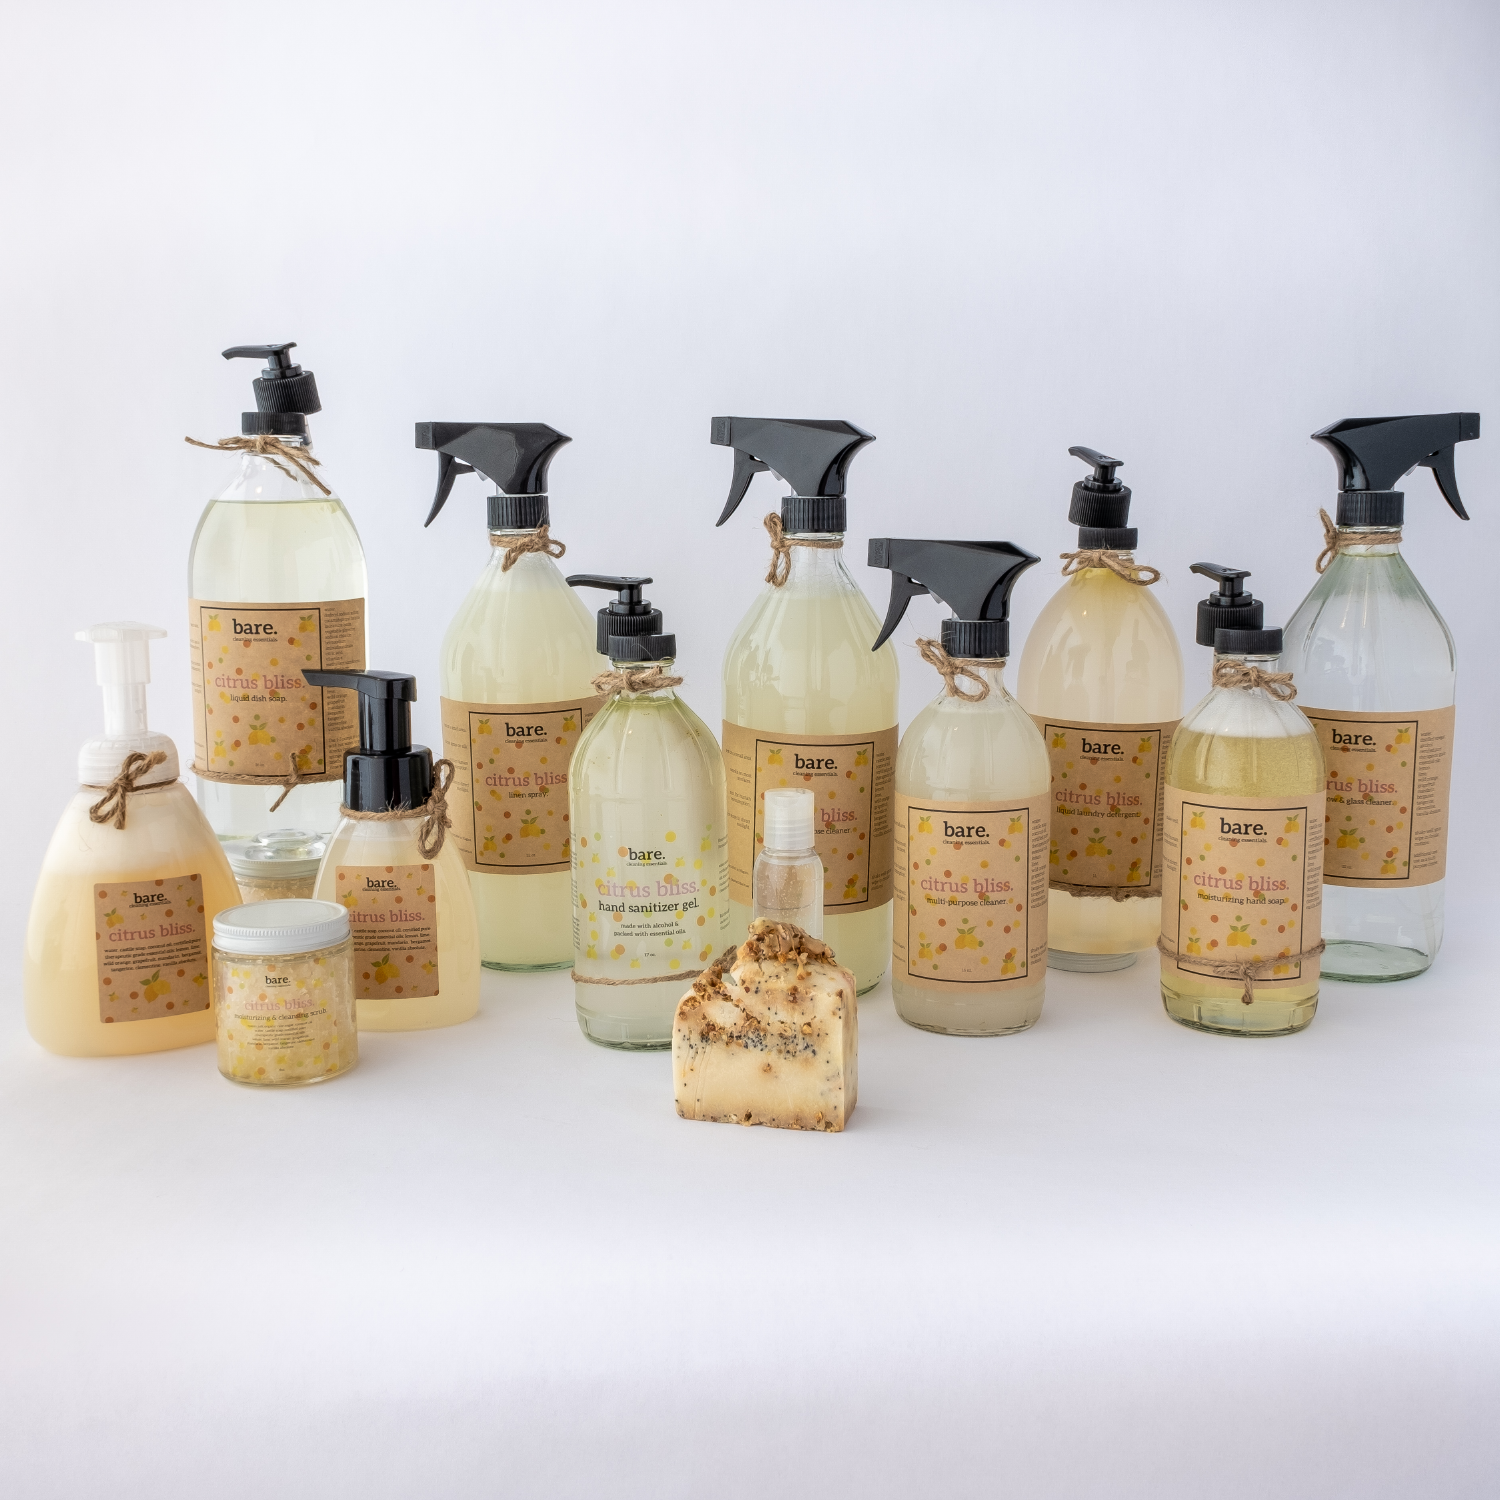 citrus bliss - full product line - clean with bare